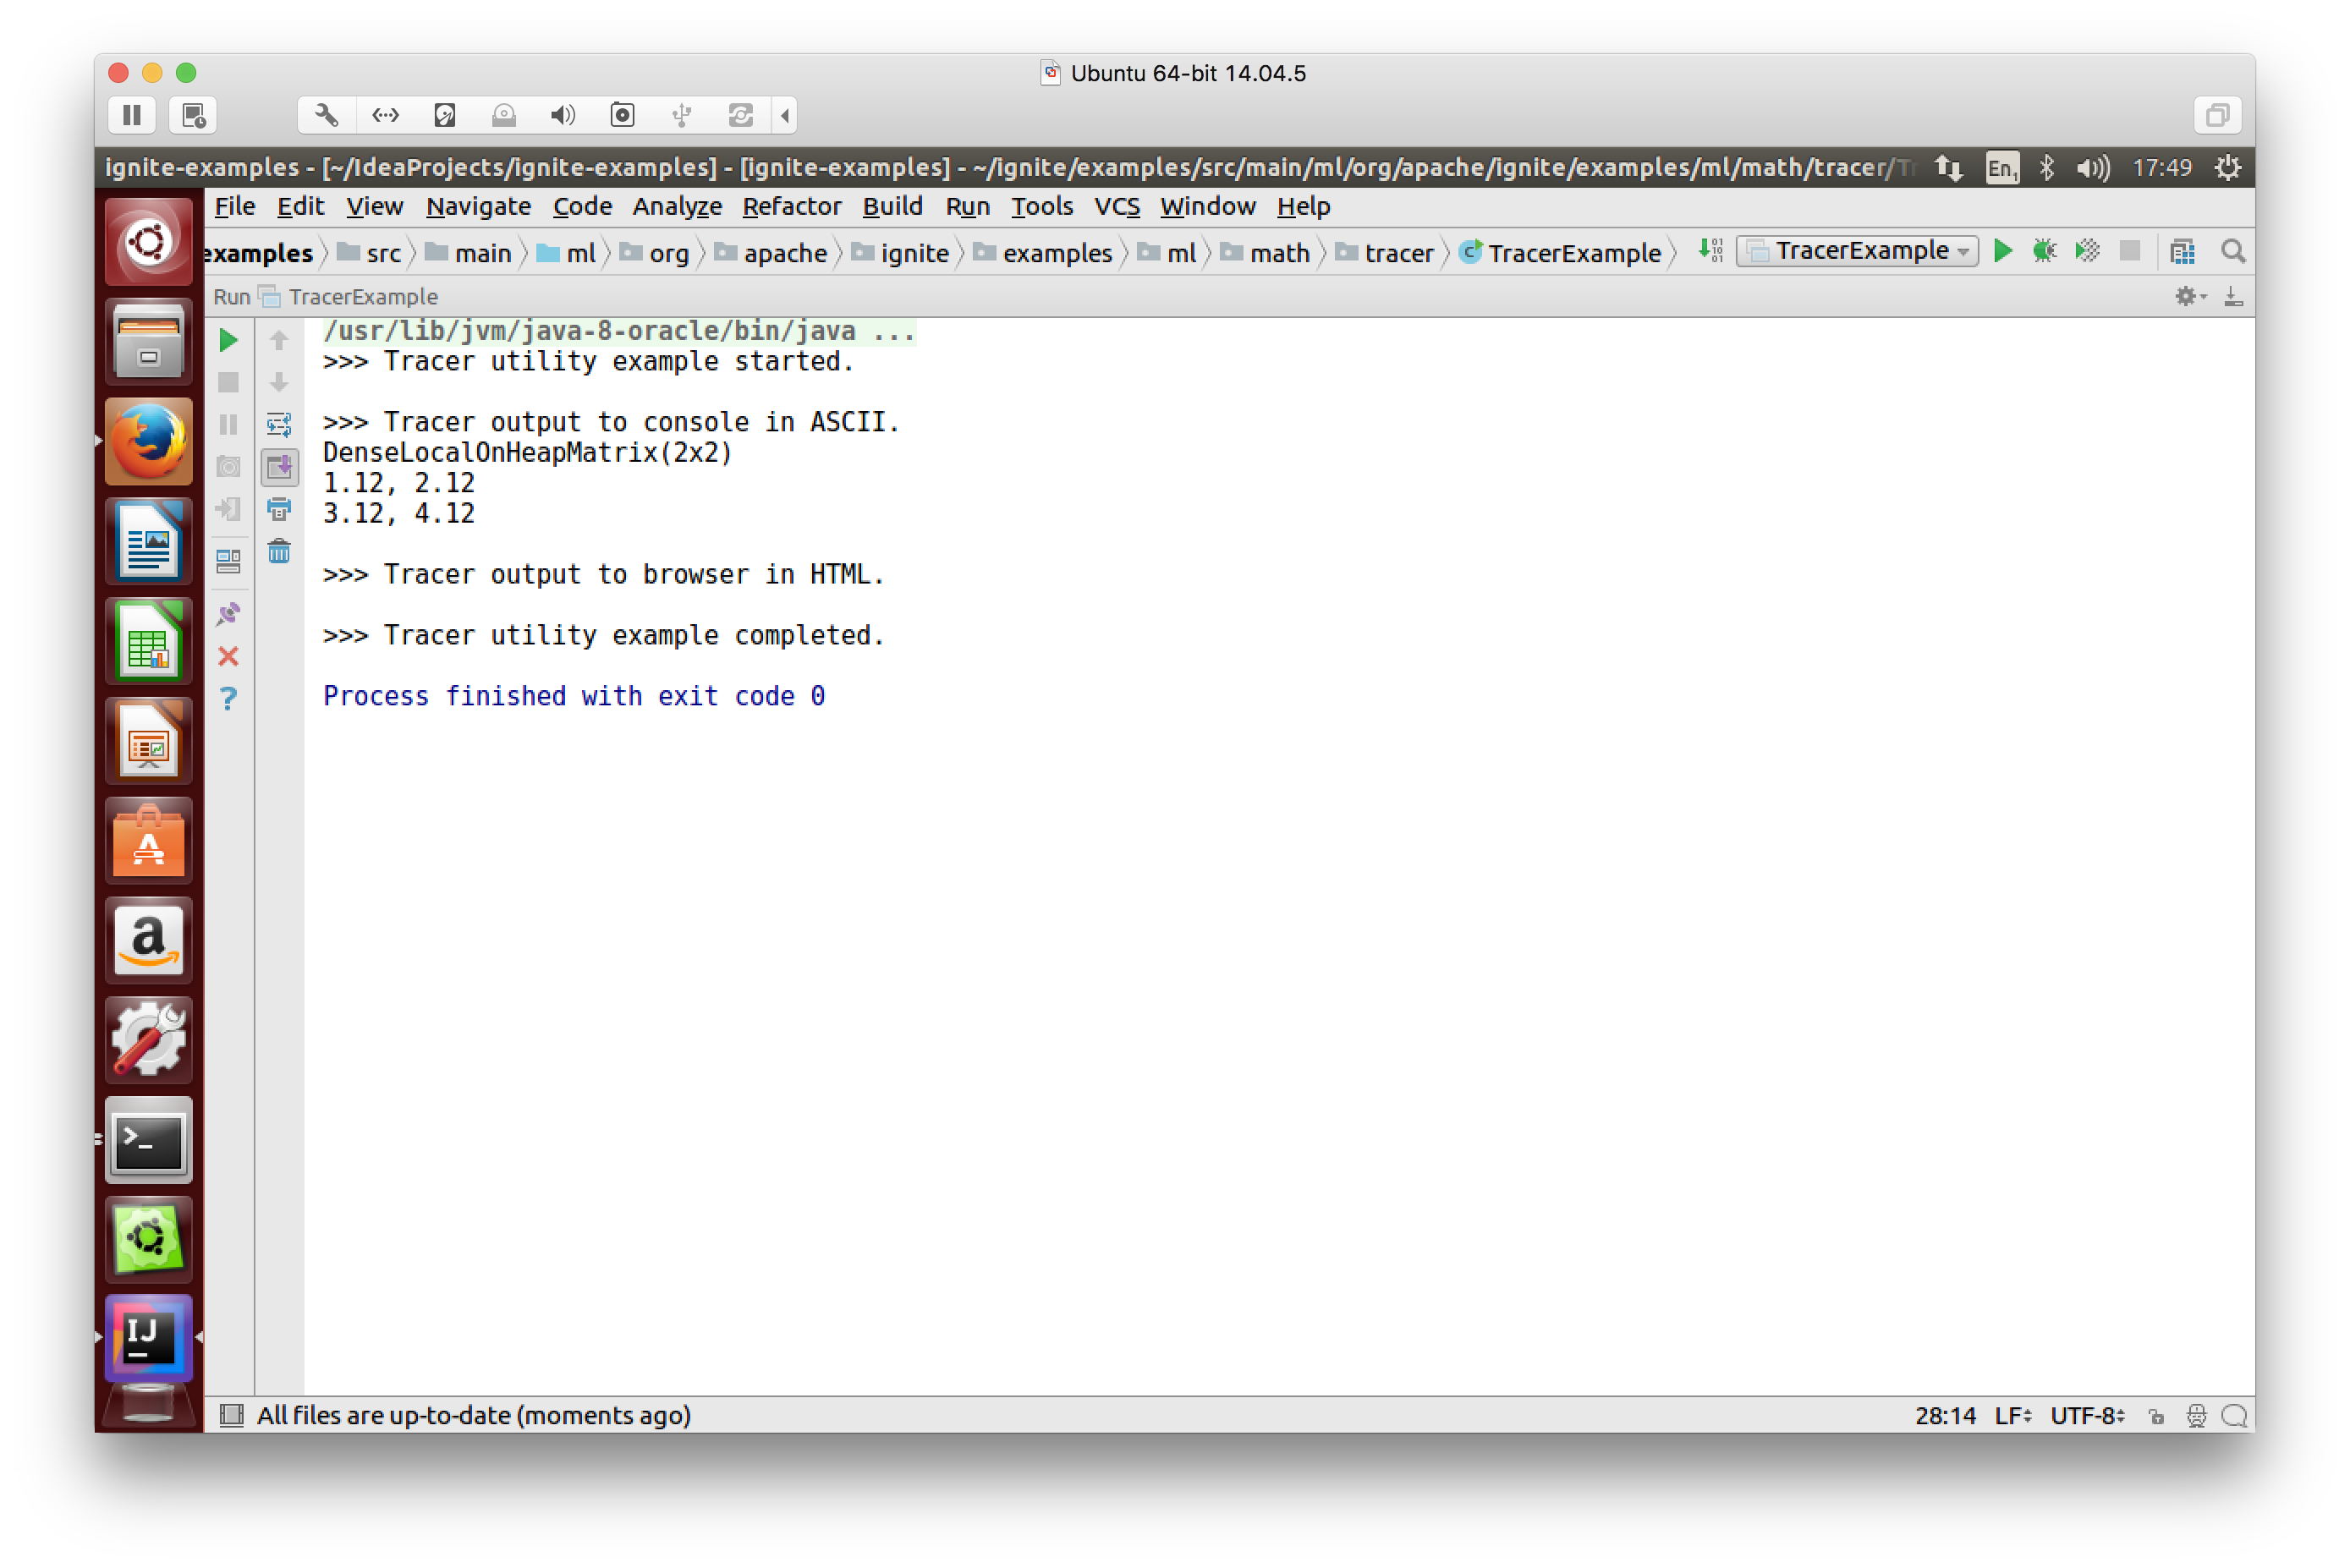 Figure 3. Tracer output to console in ASCII